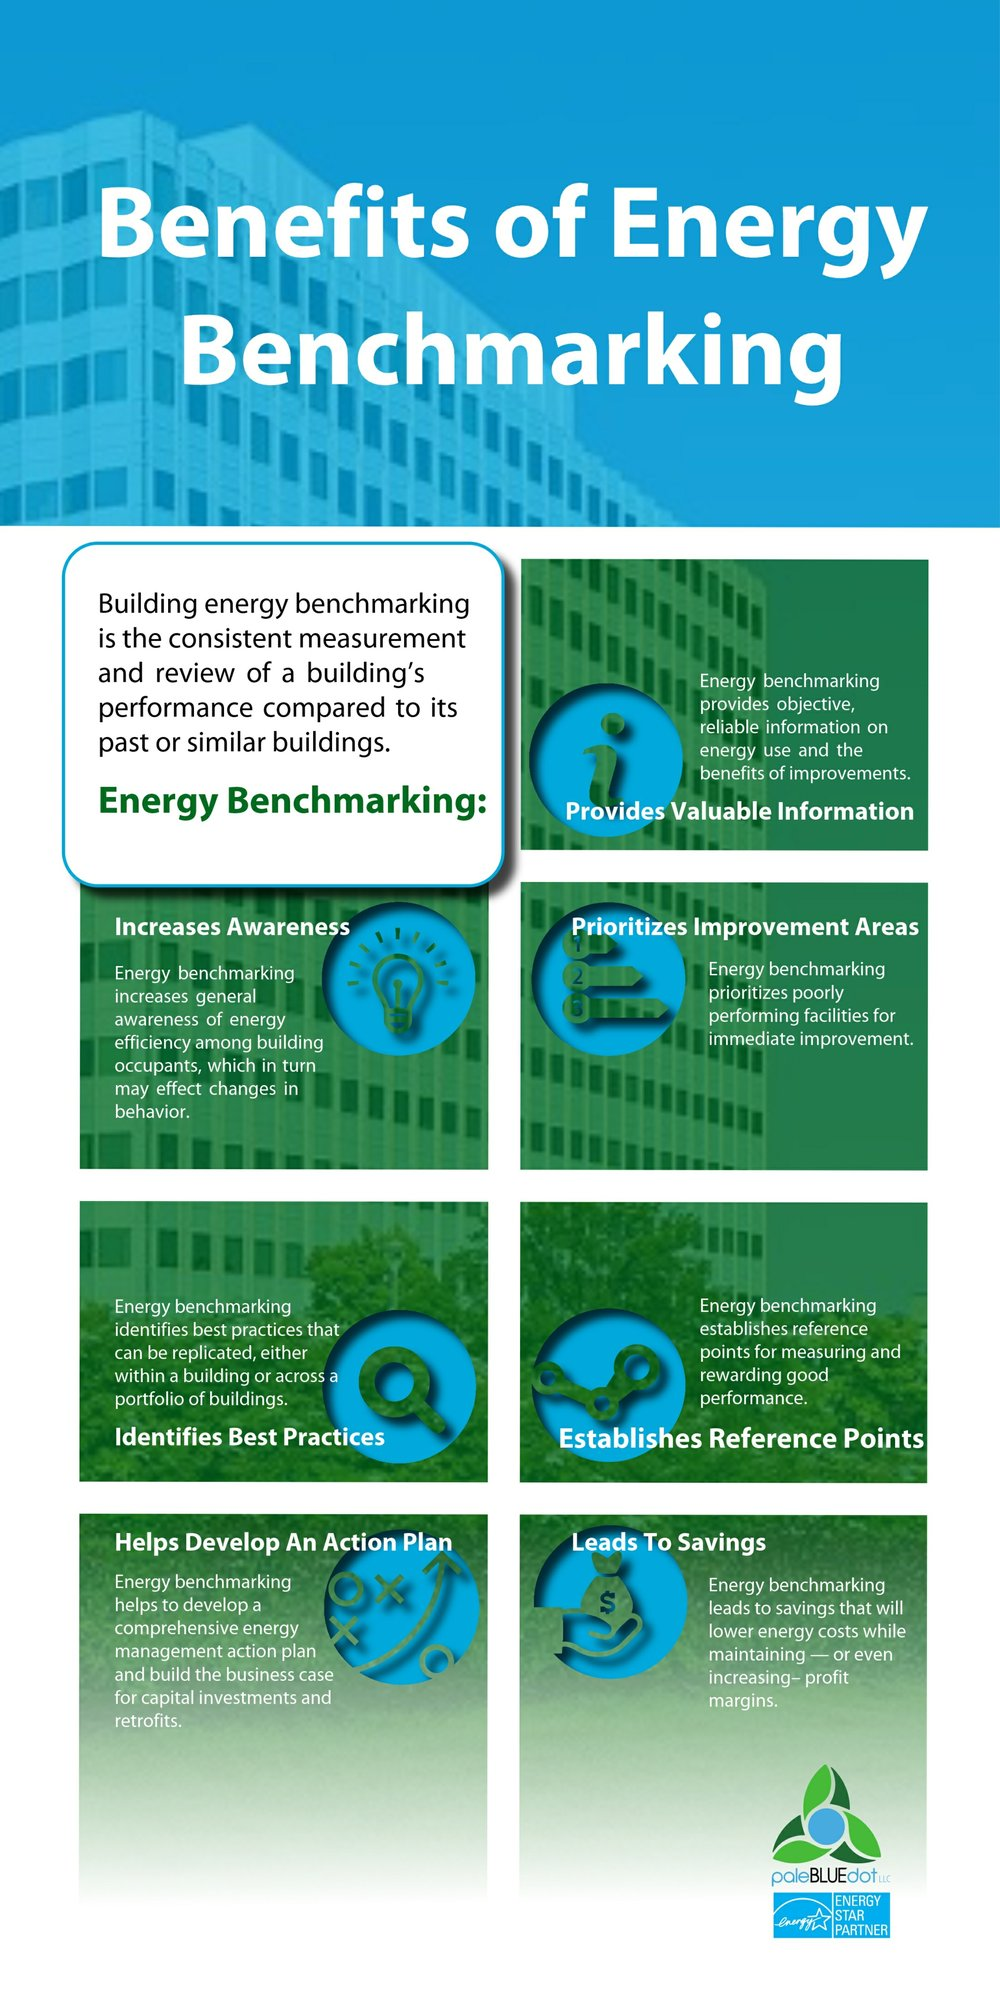 Benefits of Energy Benchmarking Infographic